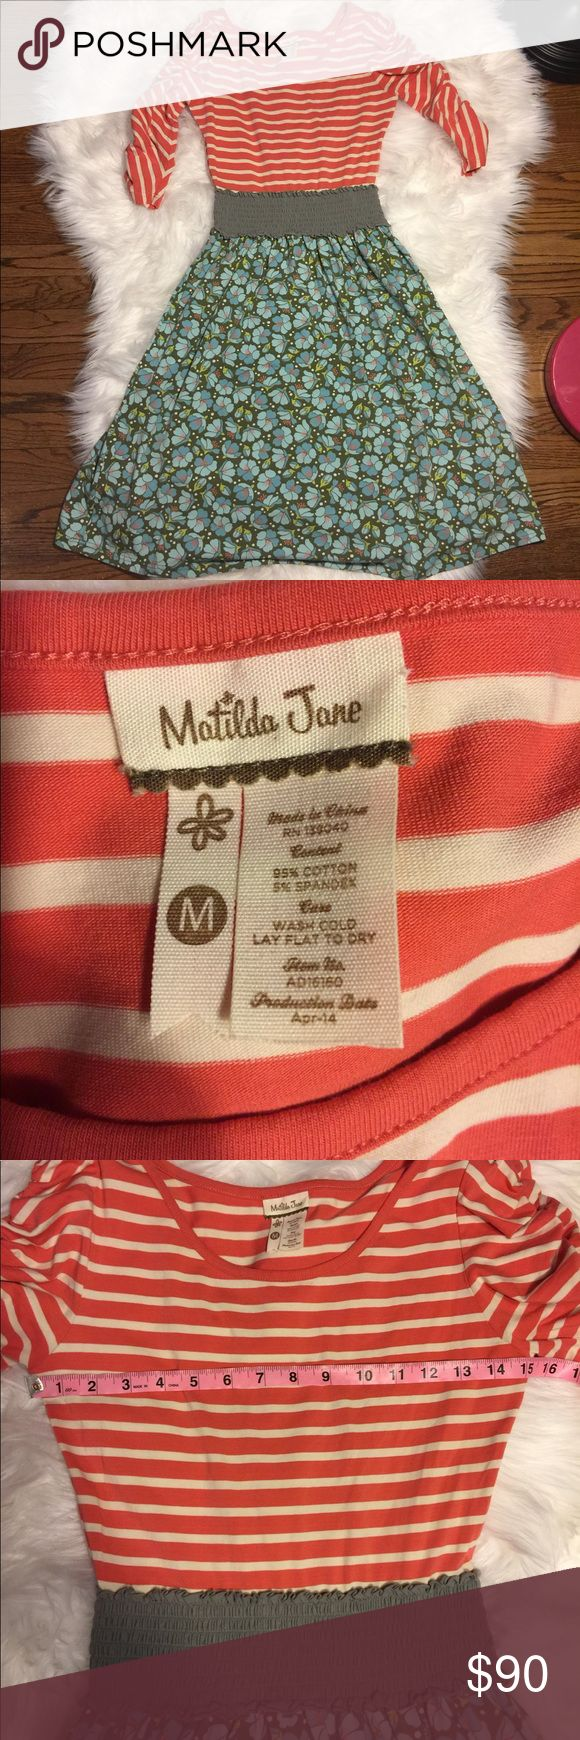 Matilda Jane women's empire waist dress medium Knee length, 3:4 sleeves, in great used condition. No rips or stains. See photos for measurements. Matilda Jane Dresses Midi